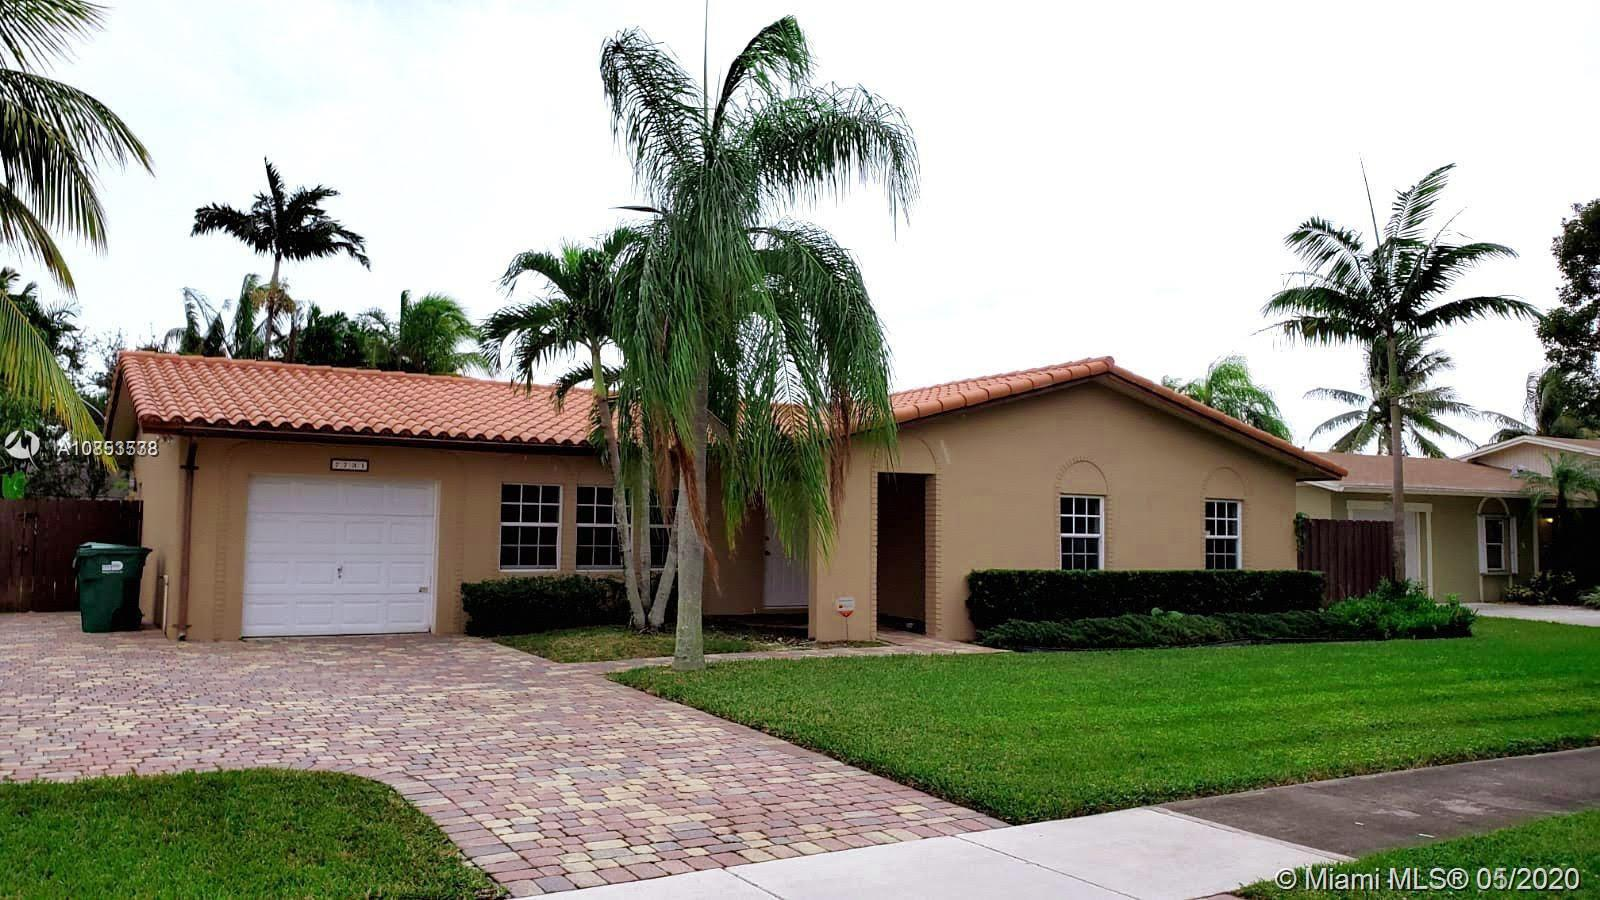 7731 SW 127 Dr., Miami, Florida 33183, 4 Bedrooms Bedrooms, ,2 BathroomsBathrooms,Residential,For Sale,7731 SW 127 Dr.,A10853538